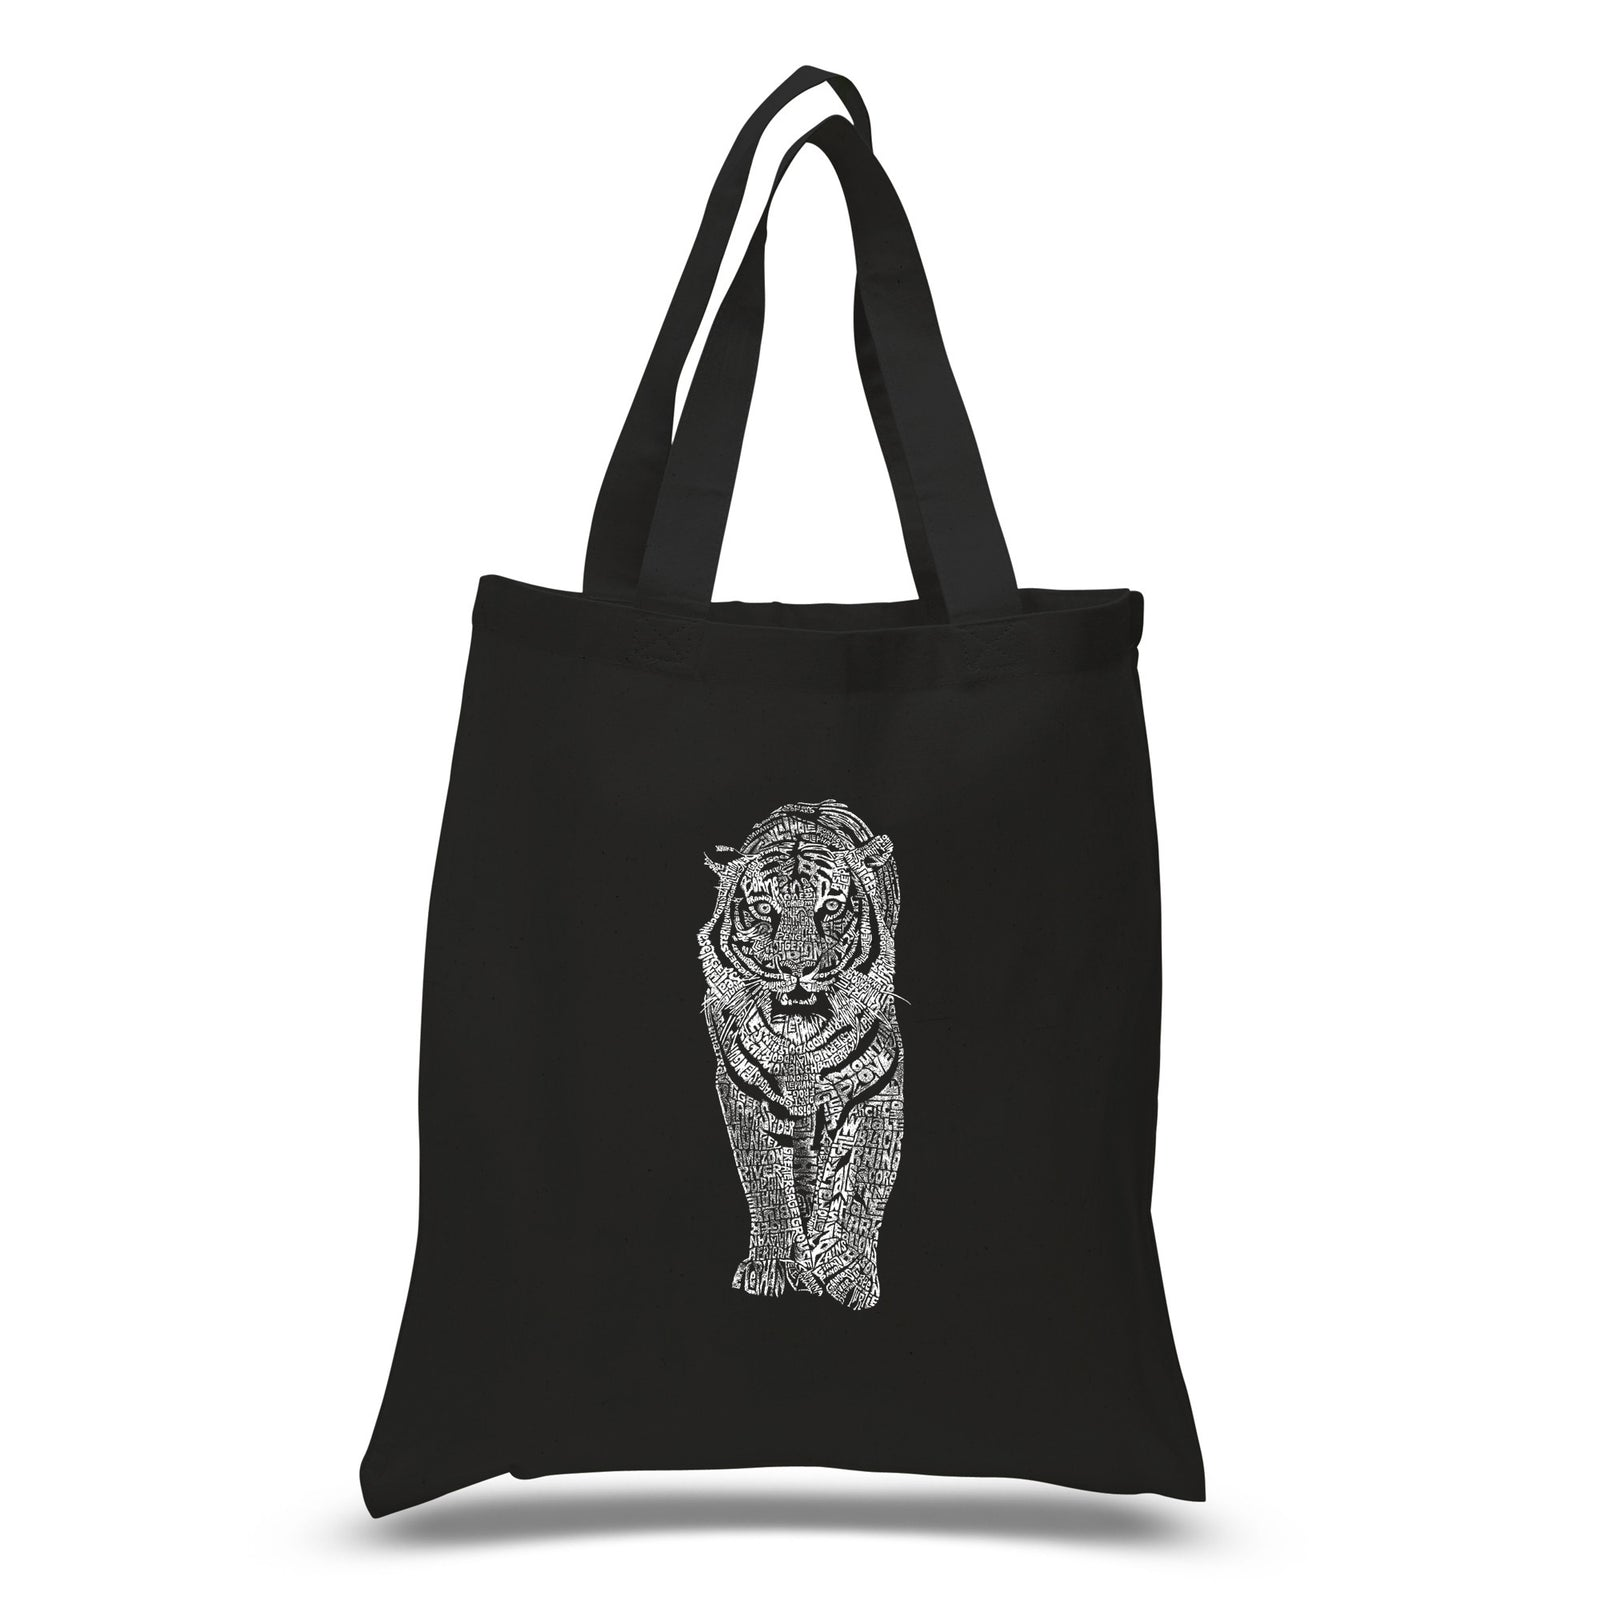 Small Tote Bag - TIGER